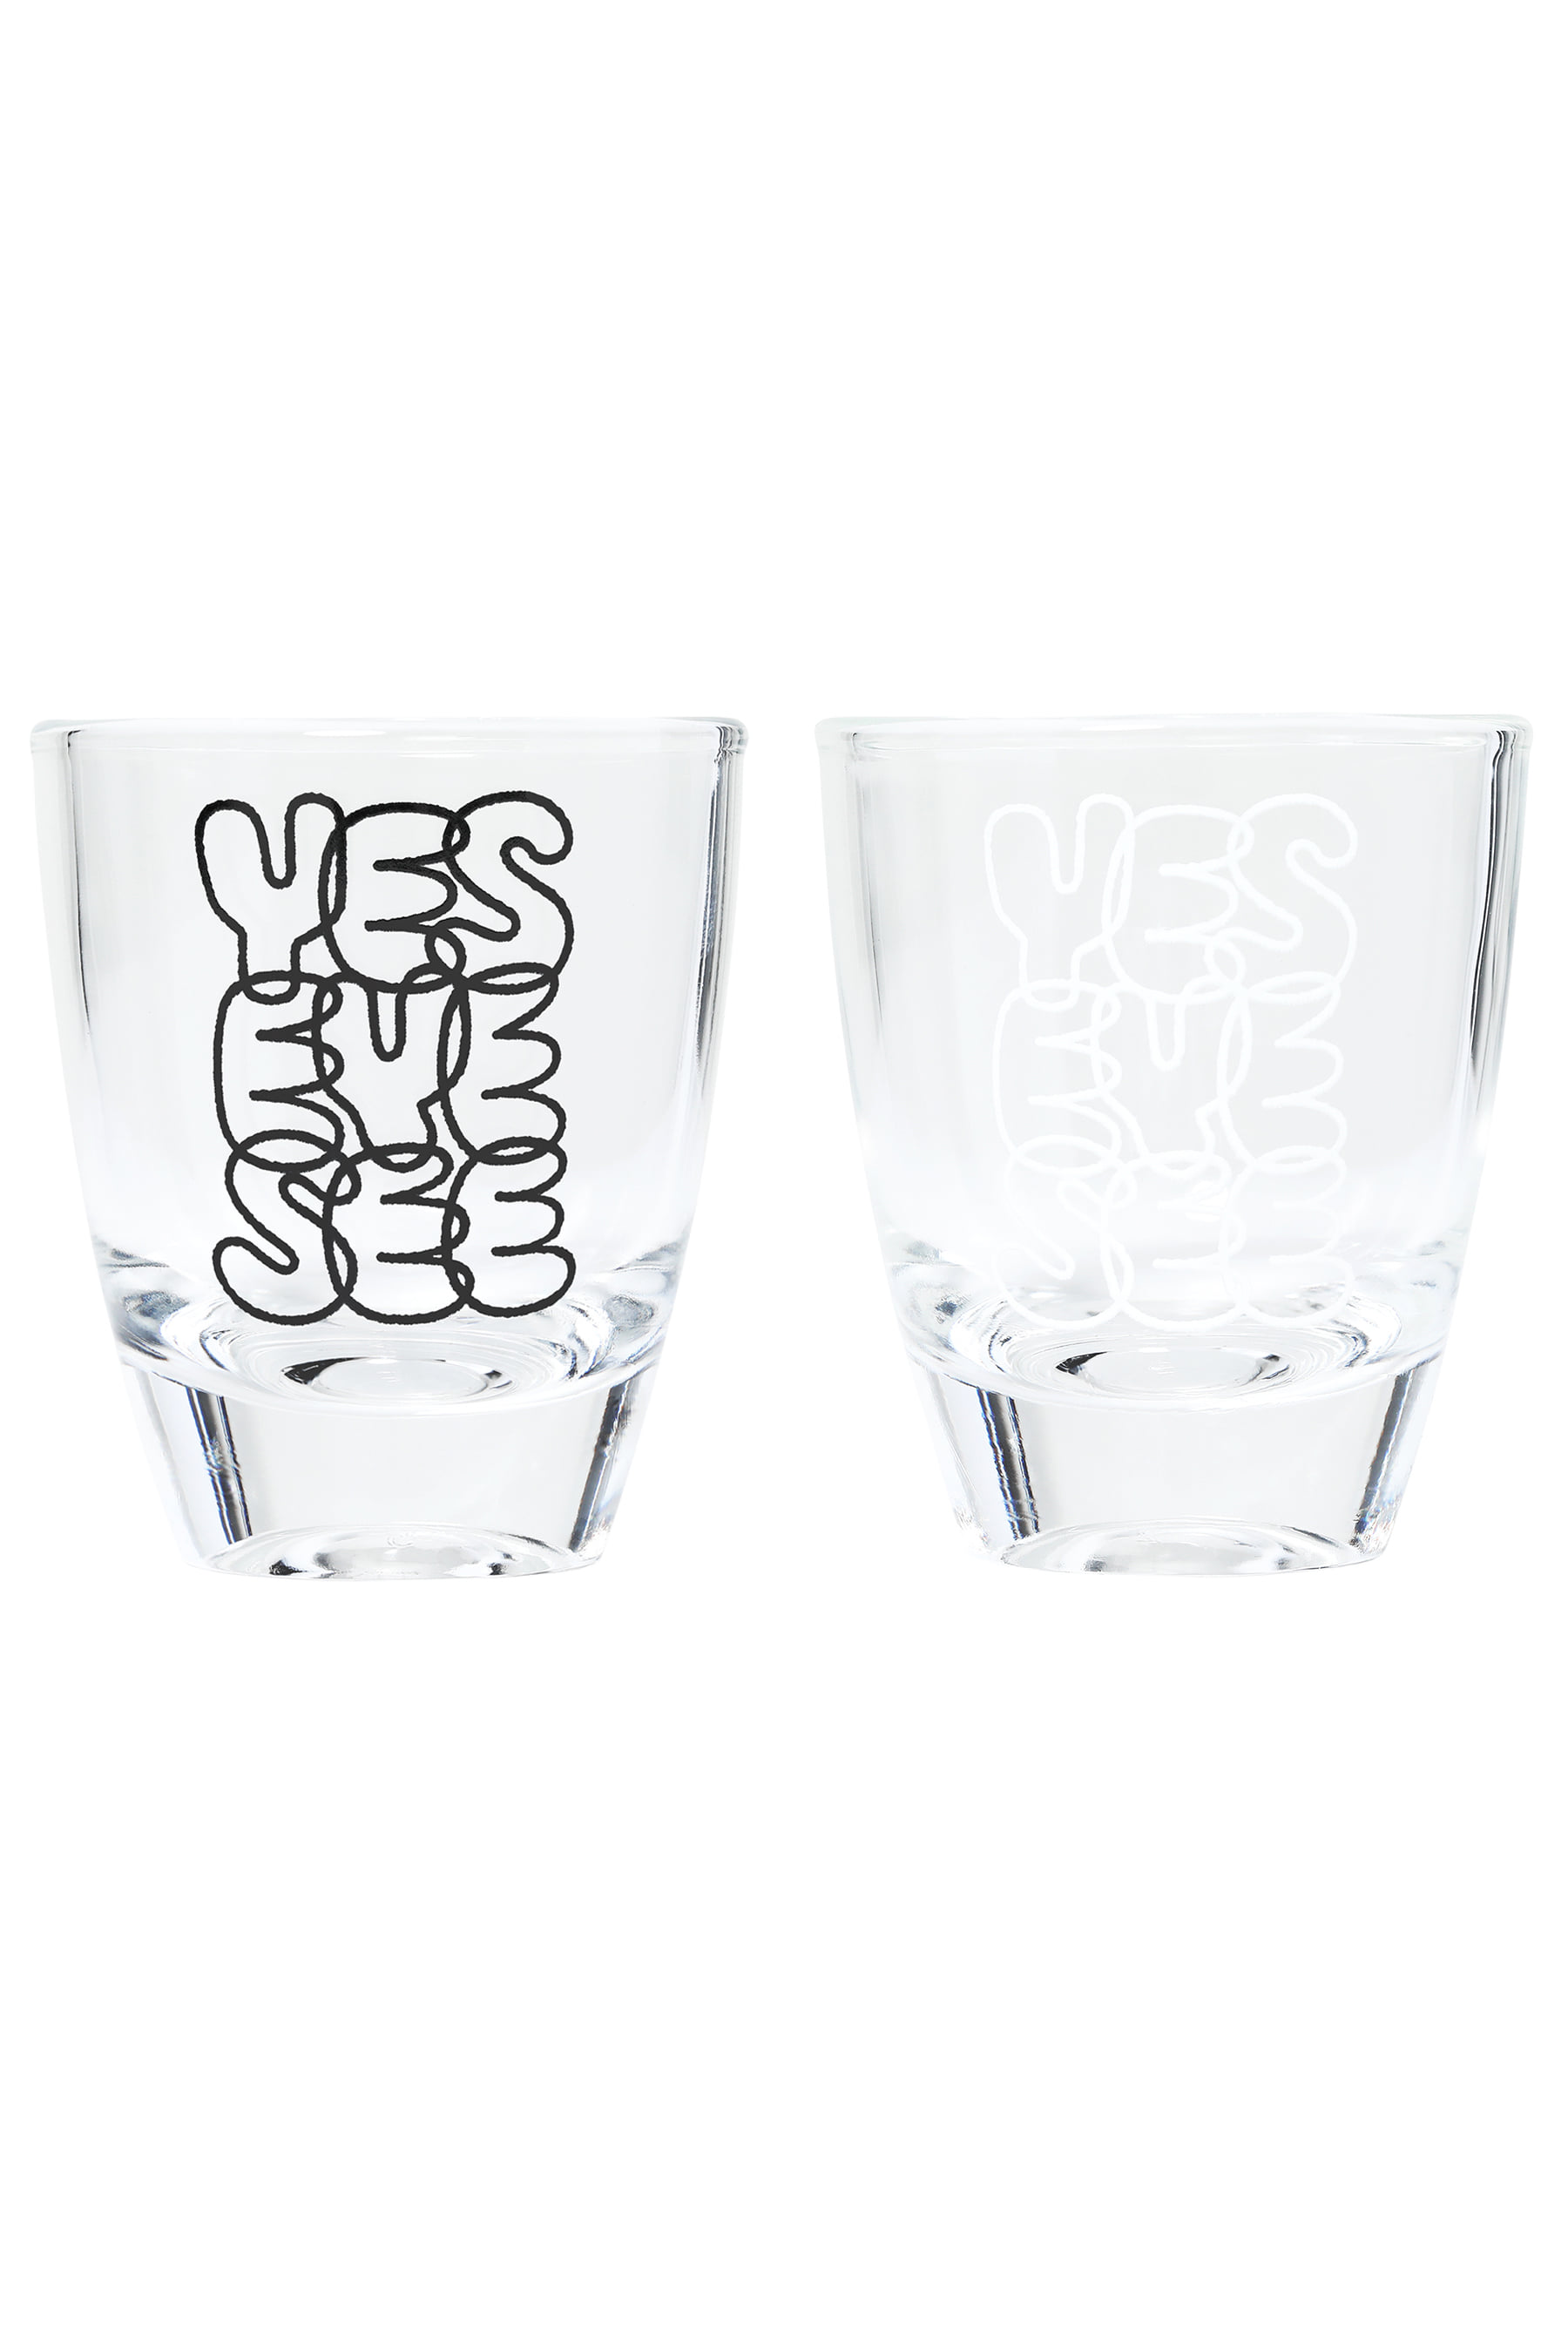 Y.E.S Shot Glass Water